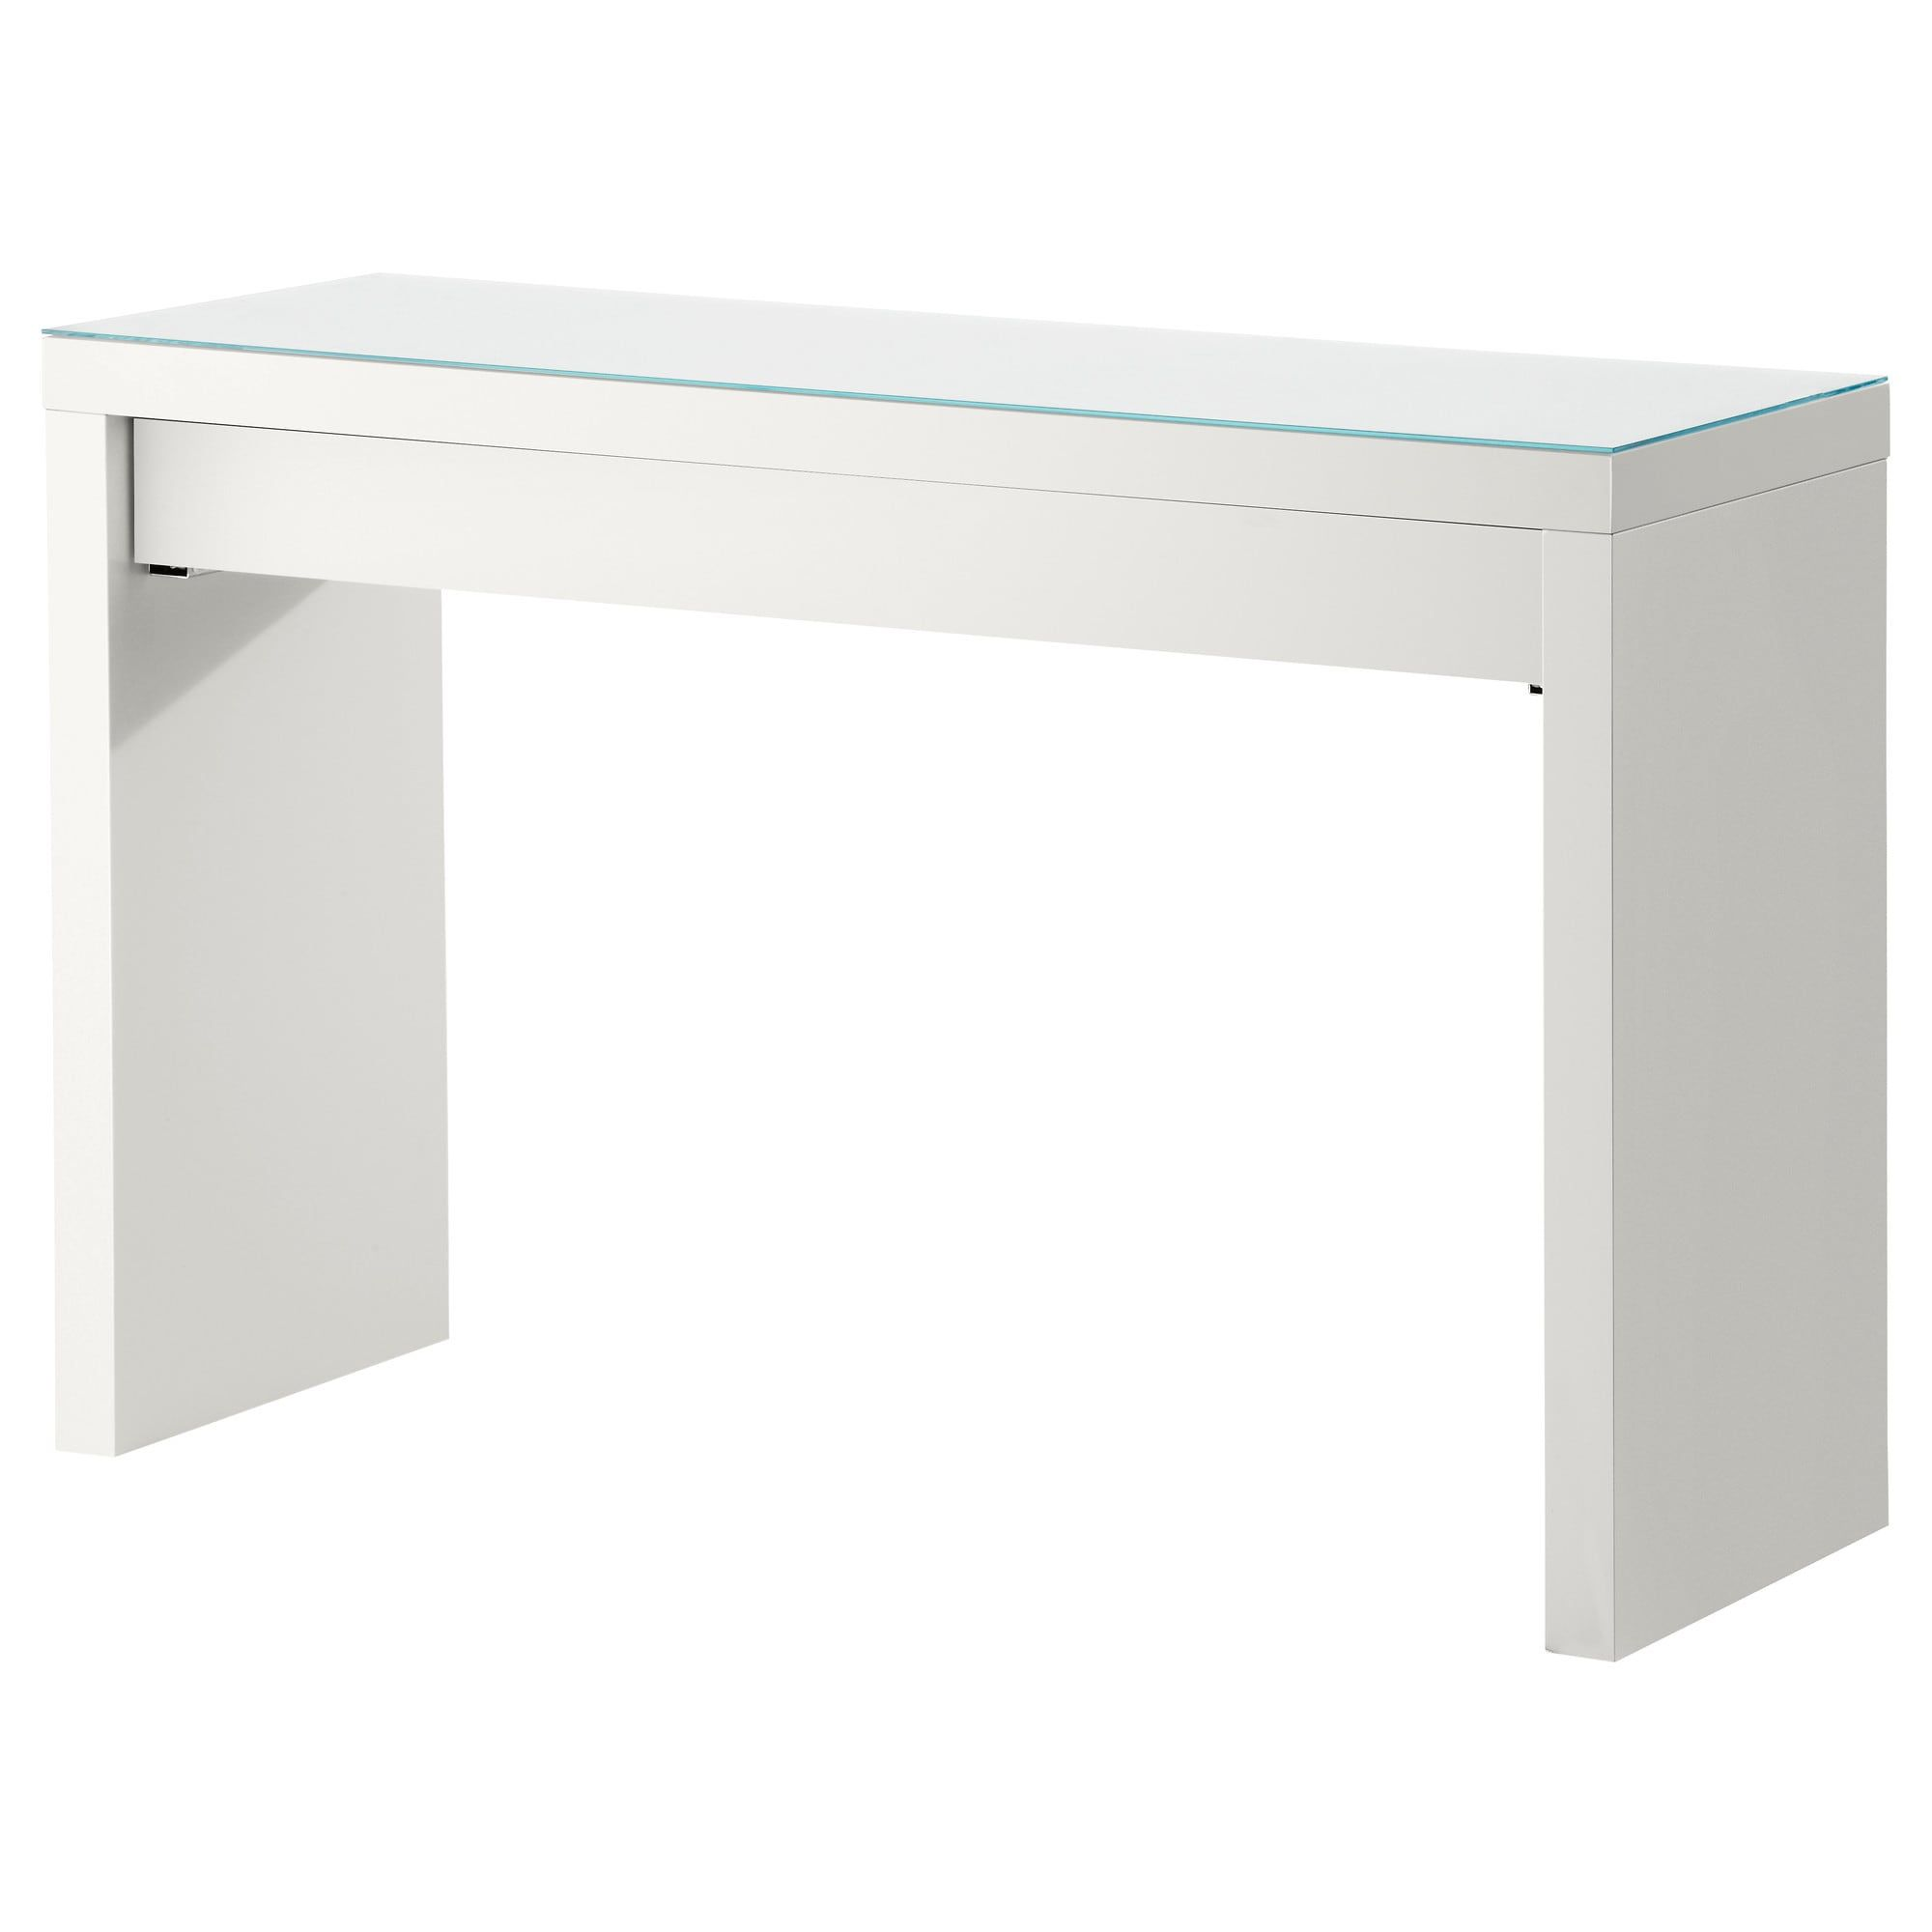 Kijiji Sofa Cornwall Lack Console Table White High Gloss In 2019 Apartment Ikea